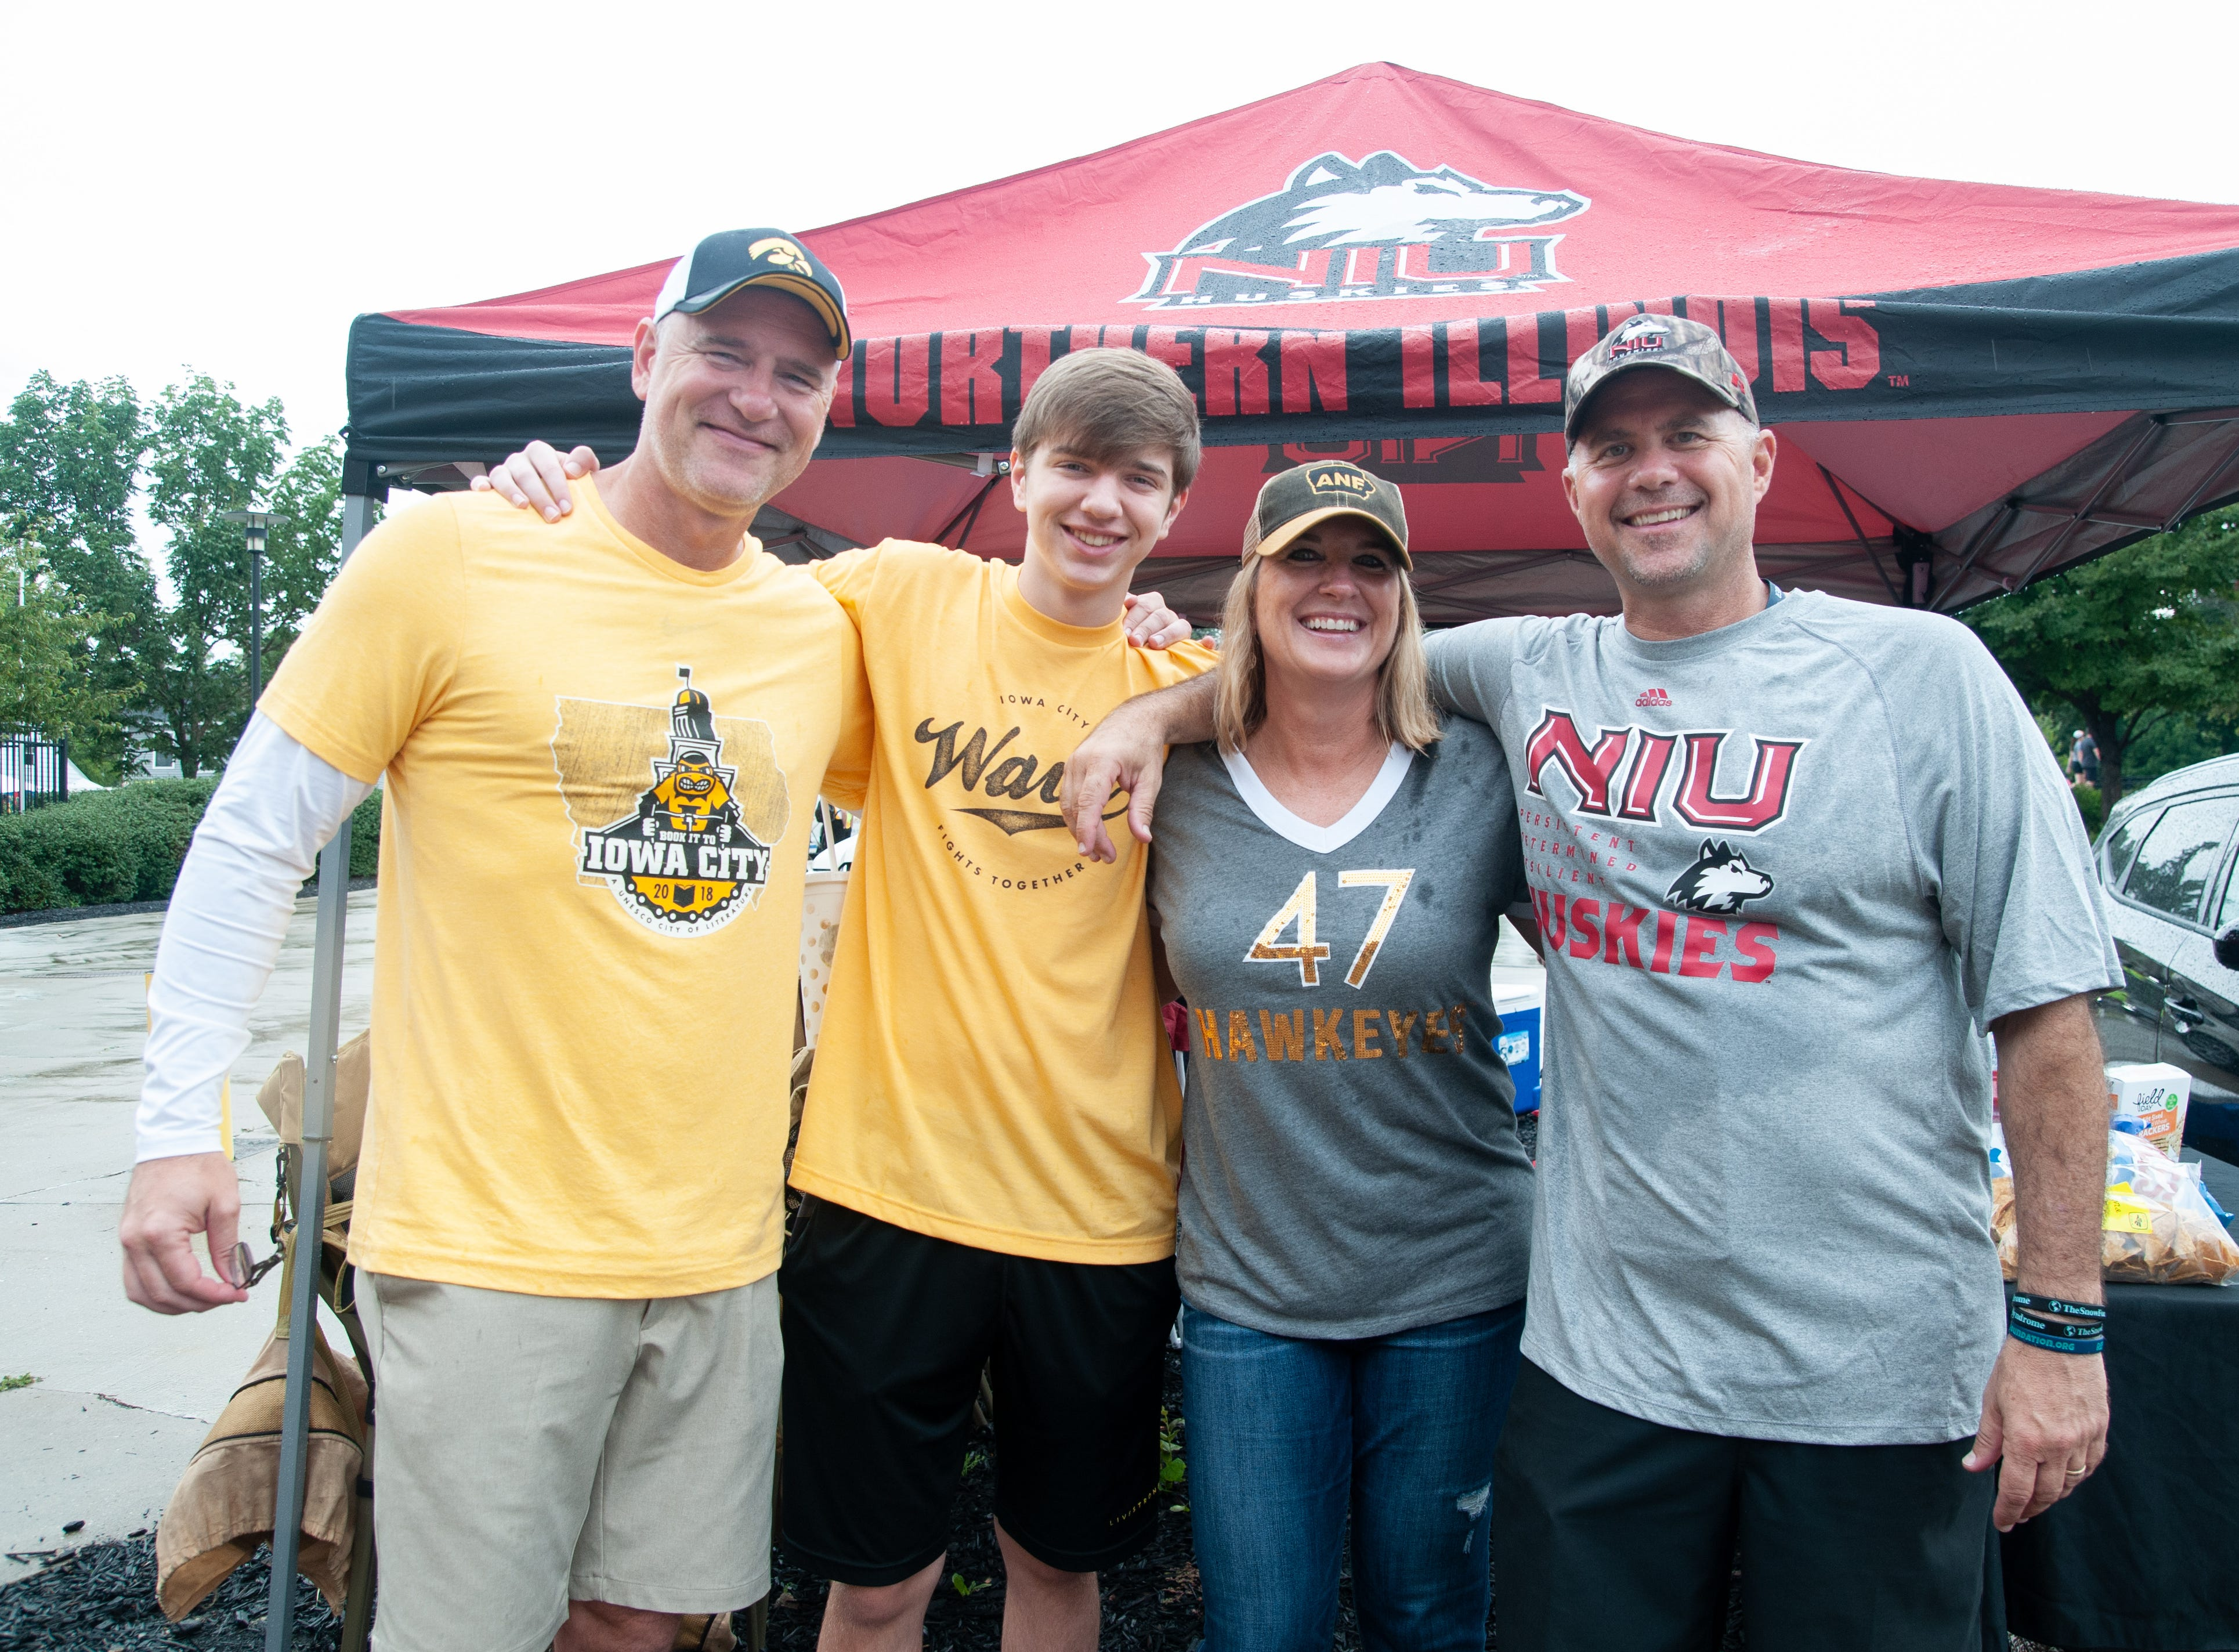 Chuck, 49, Aidan, 14, and Shelly Vaughn, 49, (left), and Matt Ference, 51, of Des Moines and Johnston, Saturday, Sept. 1, 2018, while tailgating before the Iowa game against Northern Illinois in Iowa City.